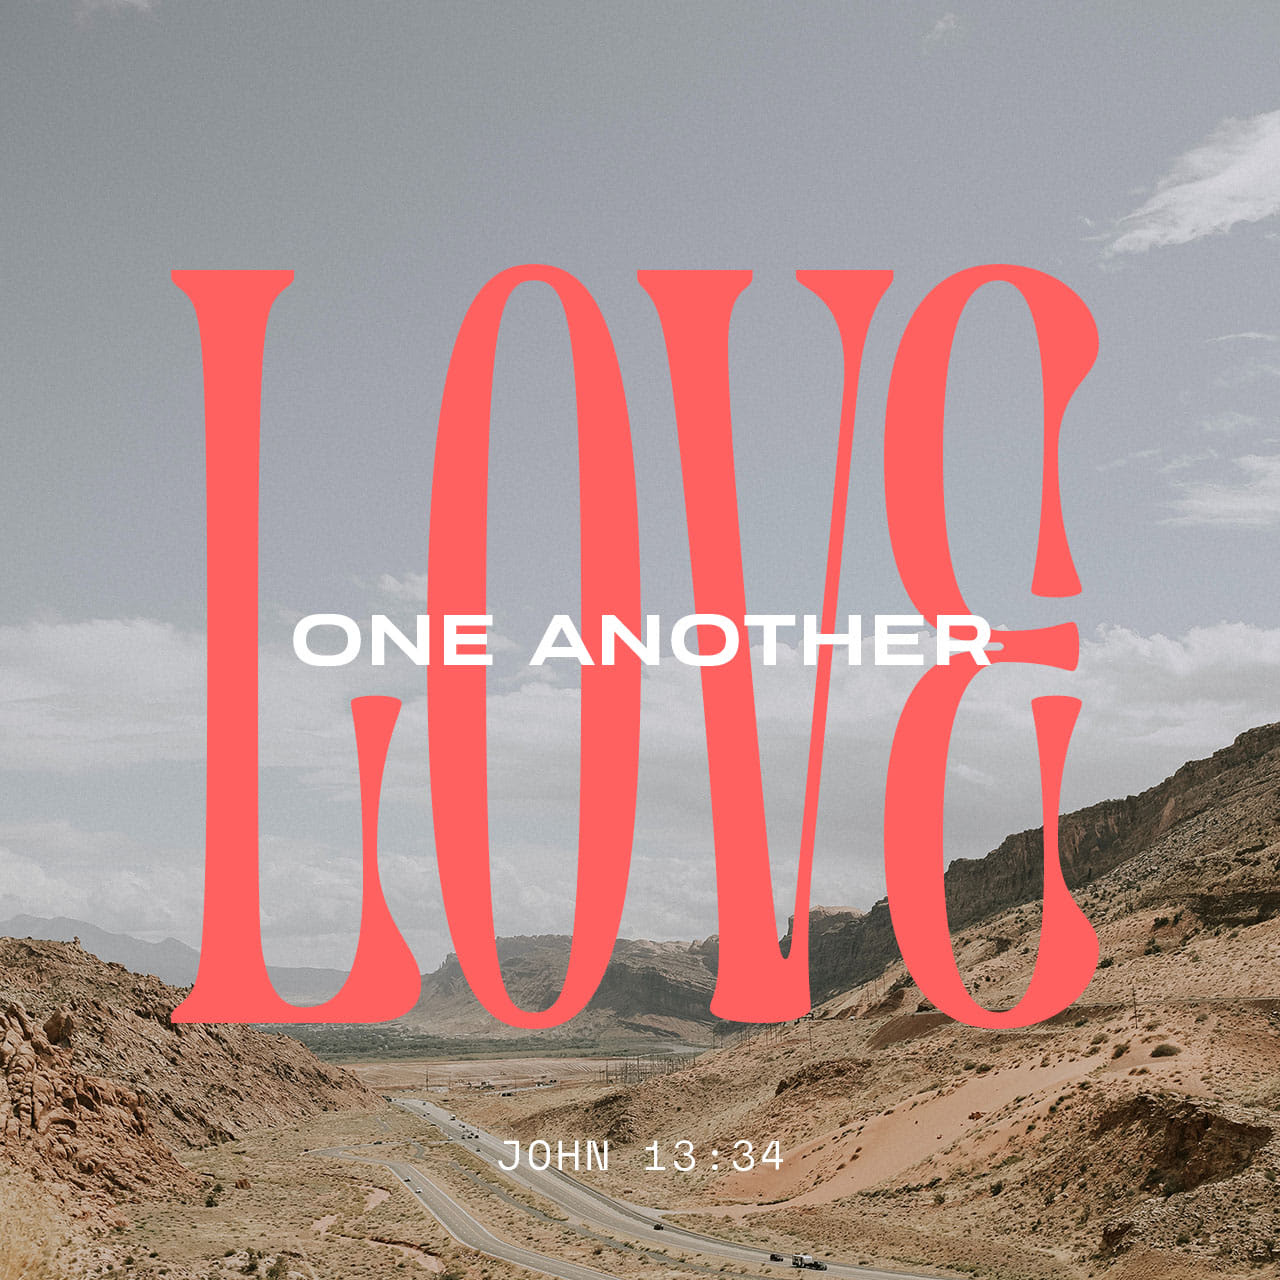 John 13:34 A new command I give you: Love one another. As I have loved you, so you must love one another.